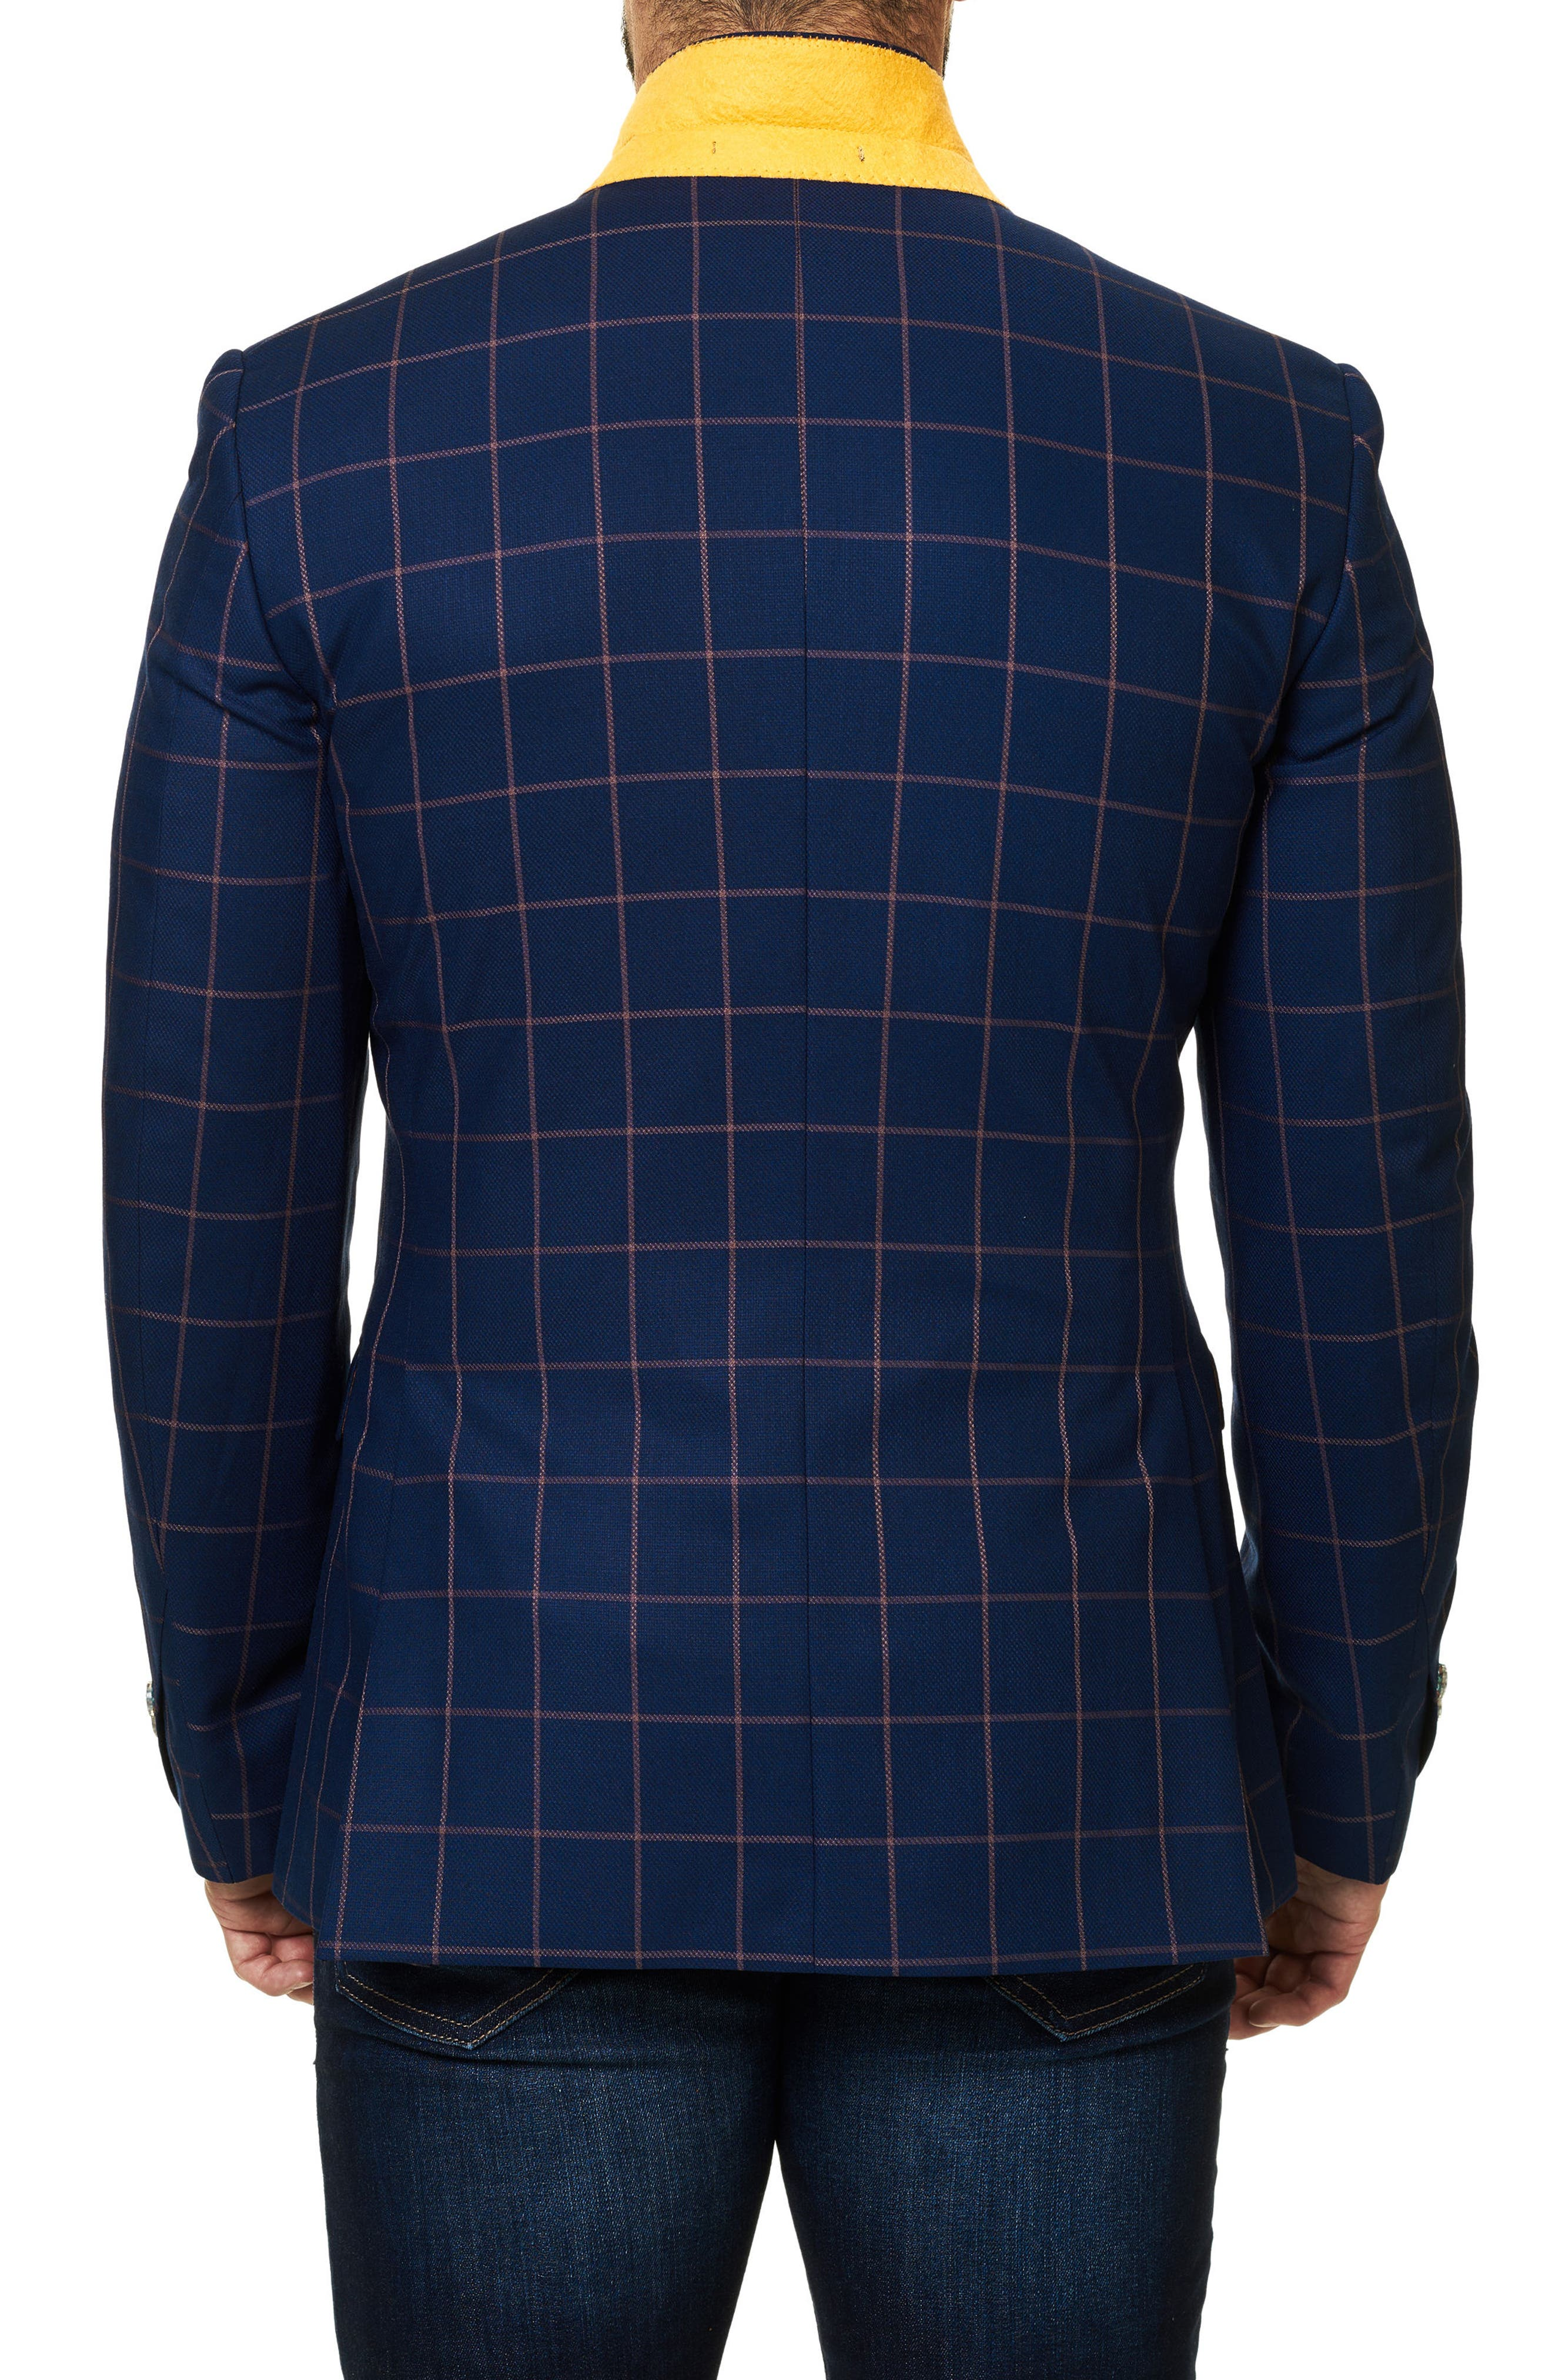 Descarte Windowpane Sport Coat,                             Alternate thumbnail 3, color,                             Medium Blue